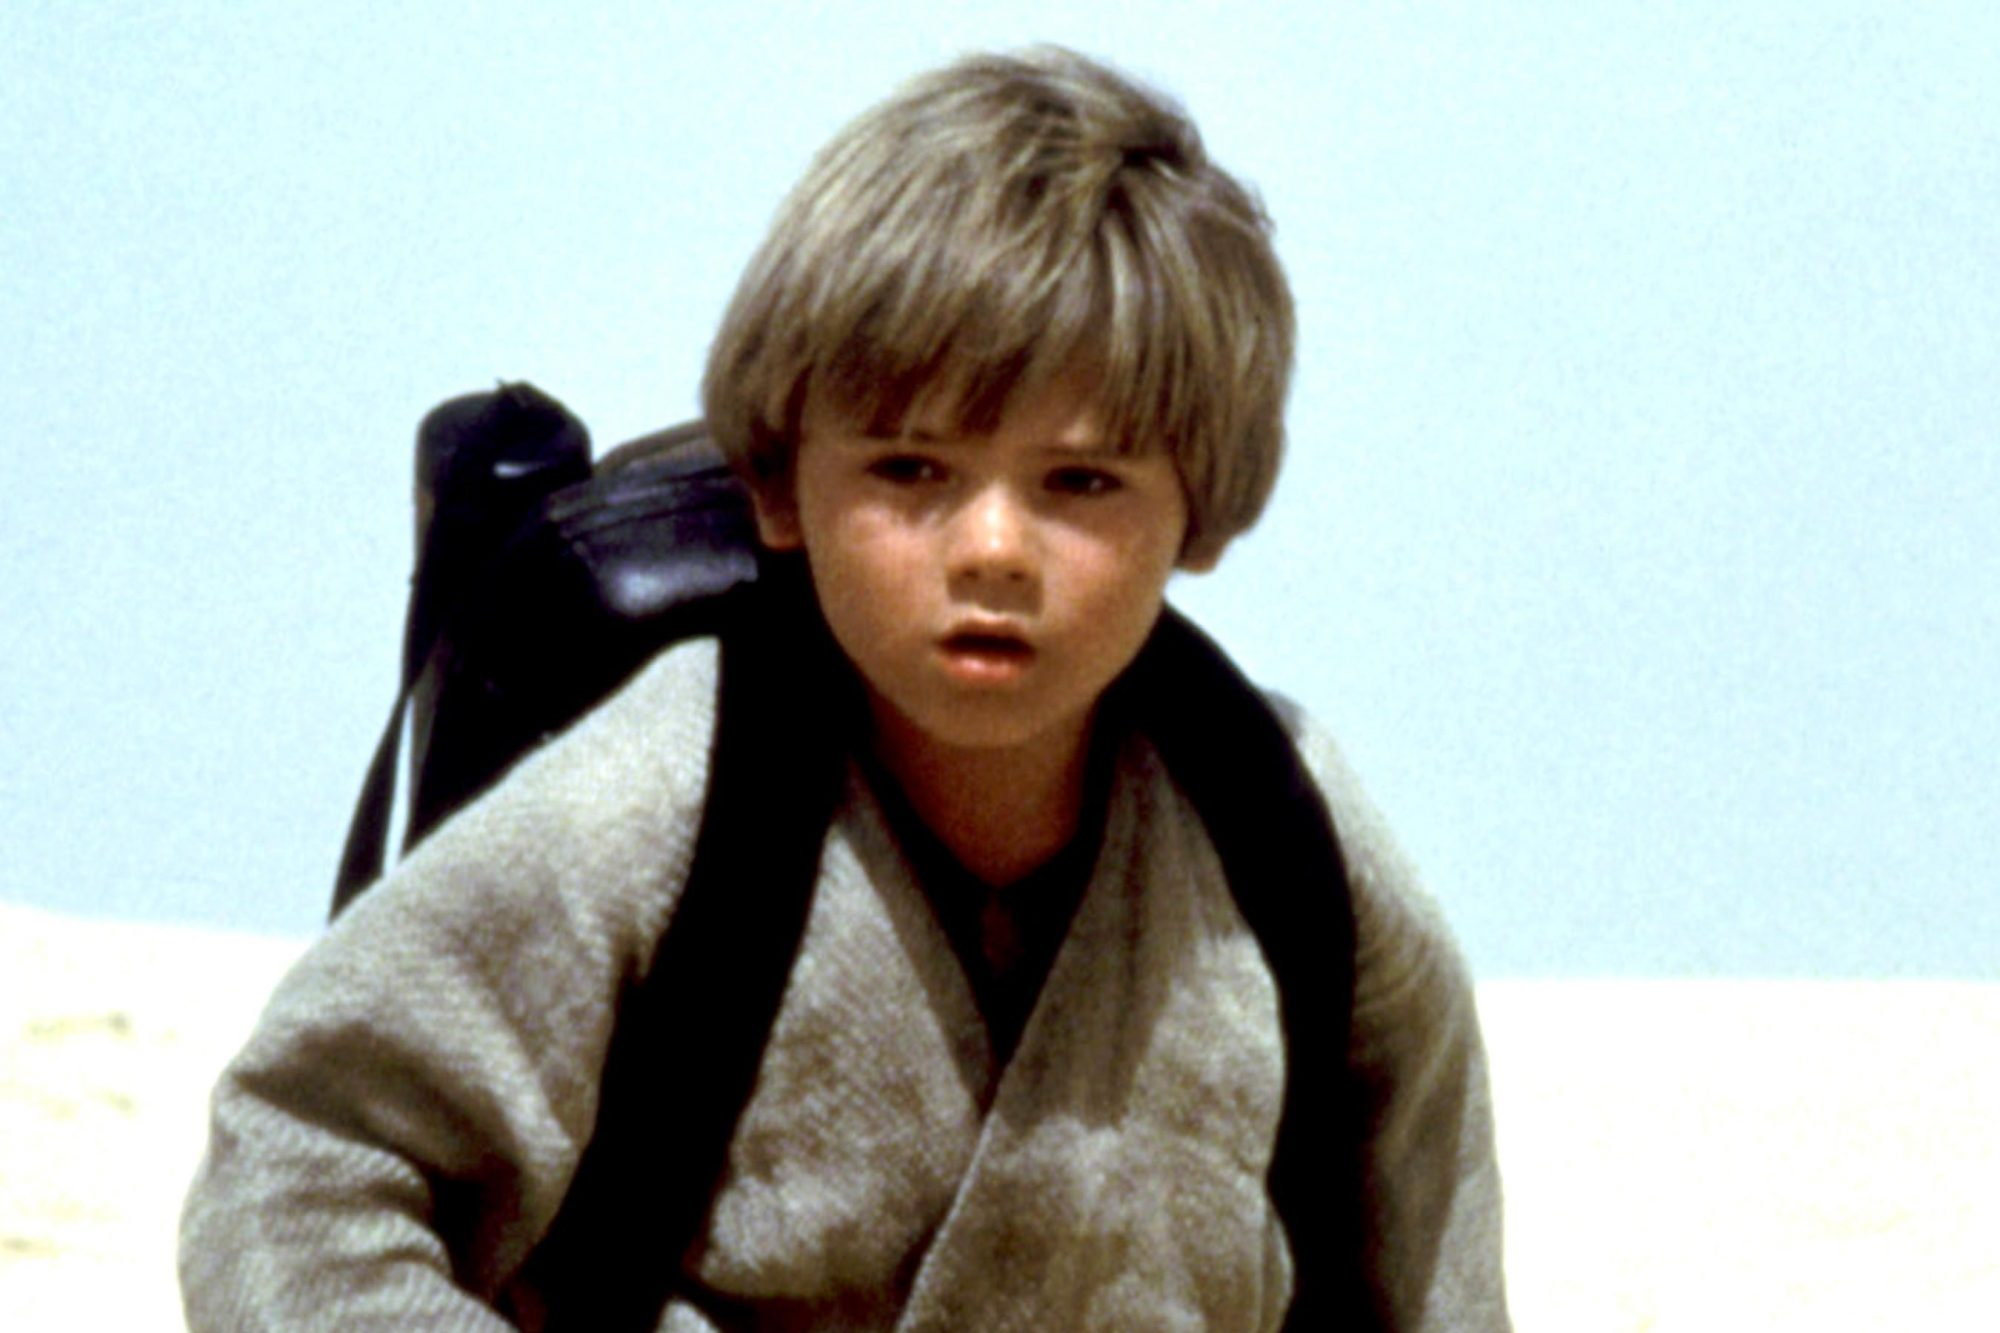 STAR WARS : EPISODE 1 - PHANTOM MENACE, Jake Lloyd, 1999